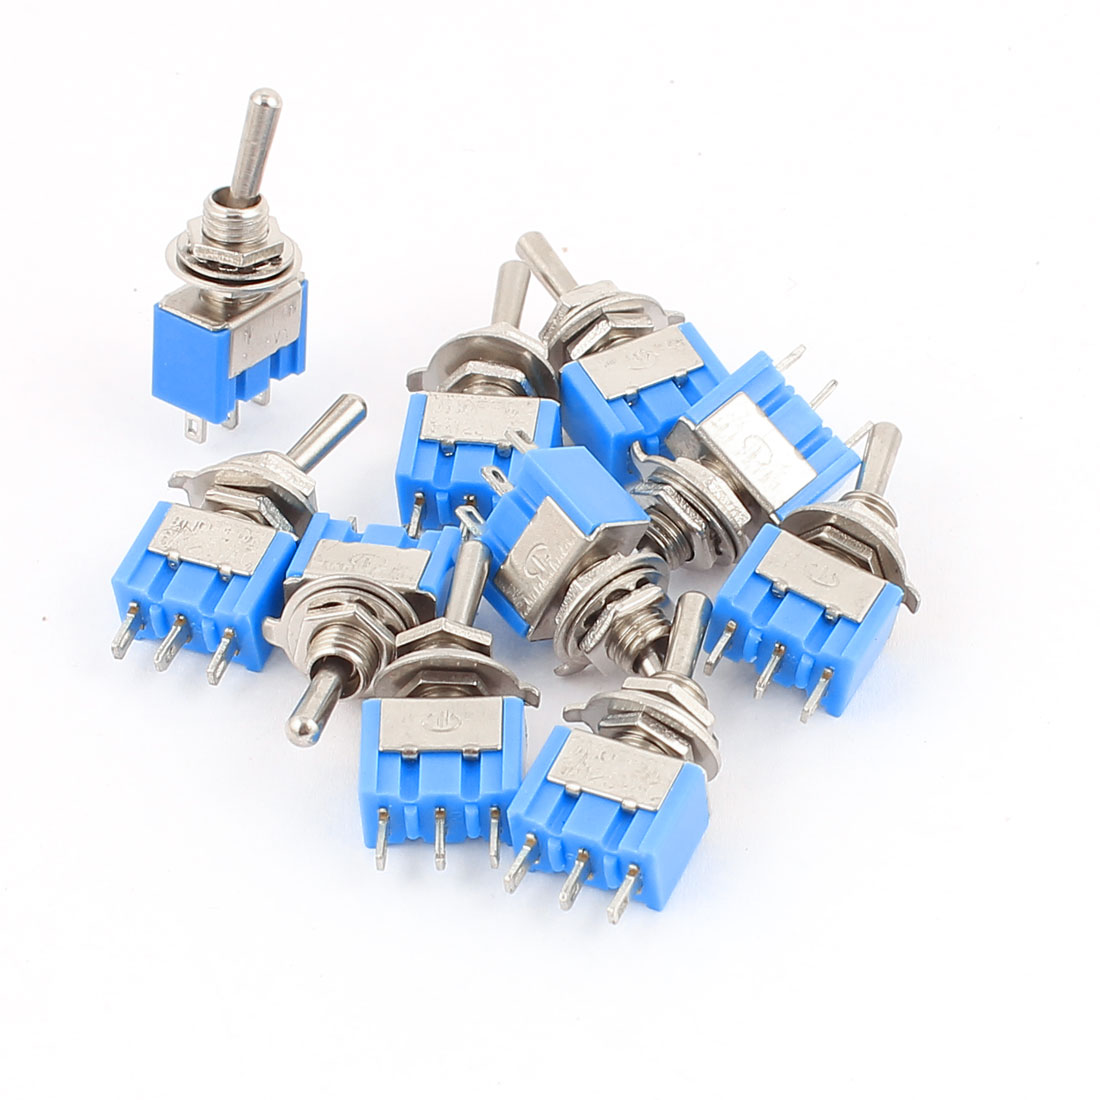 10 Pcs AC125V 6A SPDT ON-OFF-ON 3 Positions 3 Terminals Latching Mini Toggle Switch